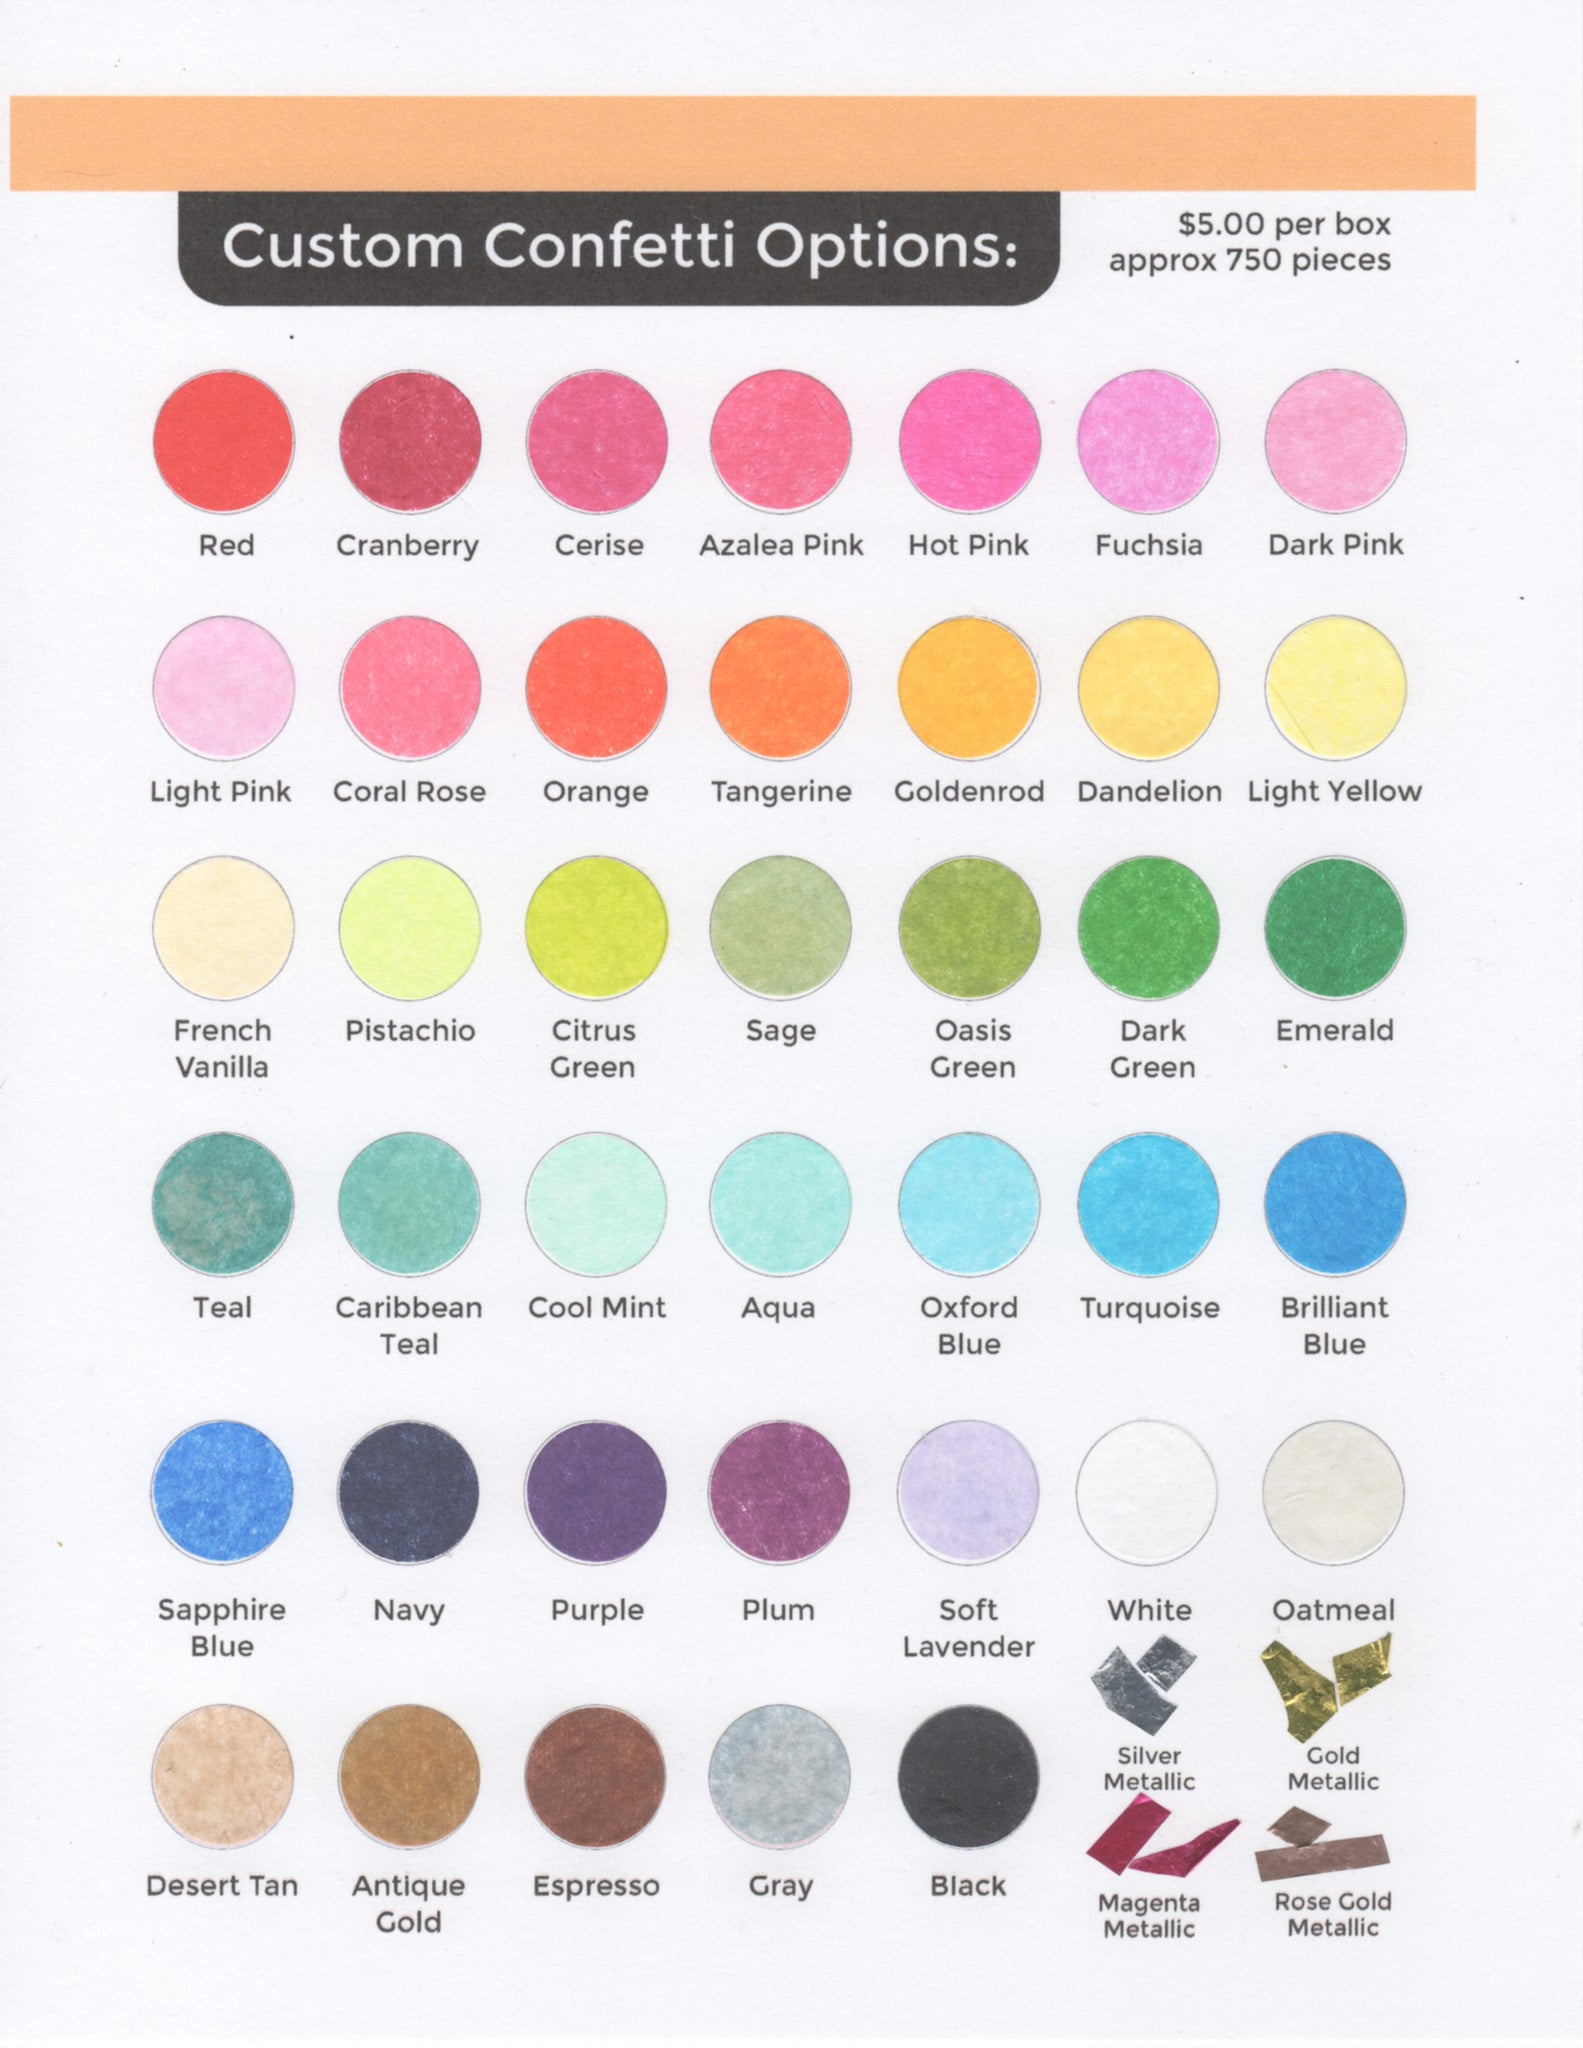 Confetti Color Options.